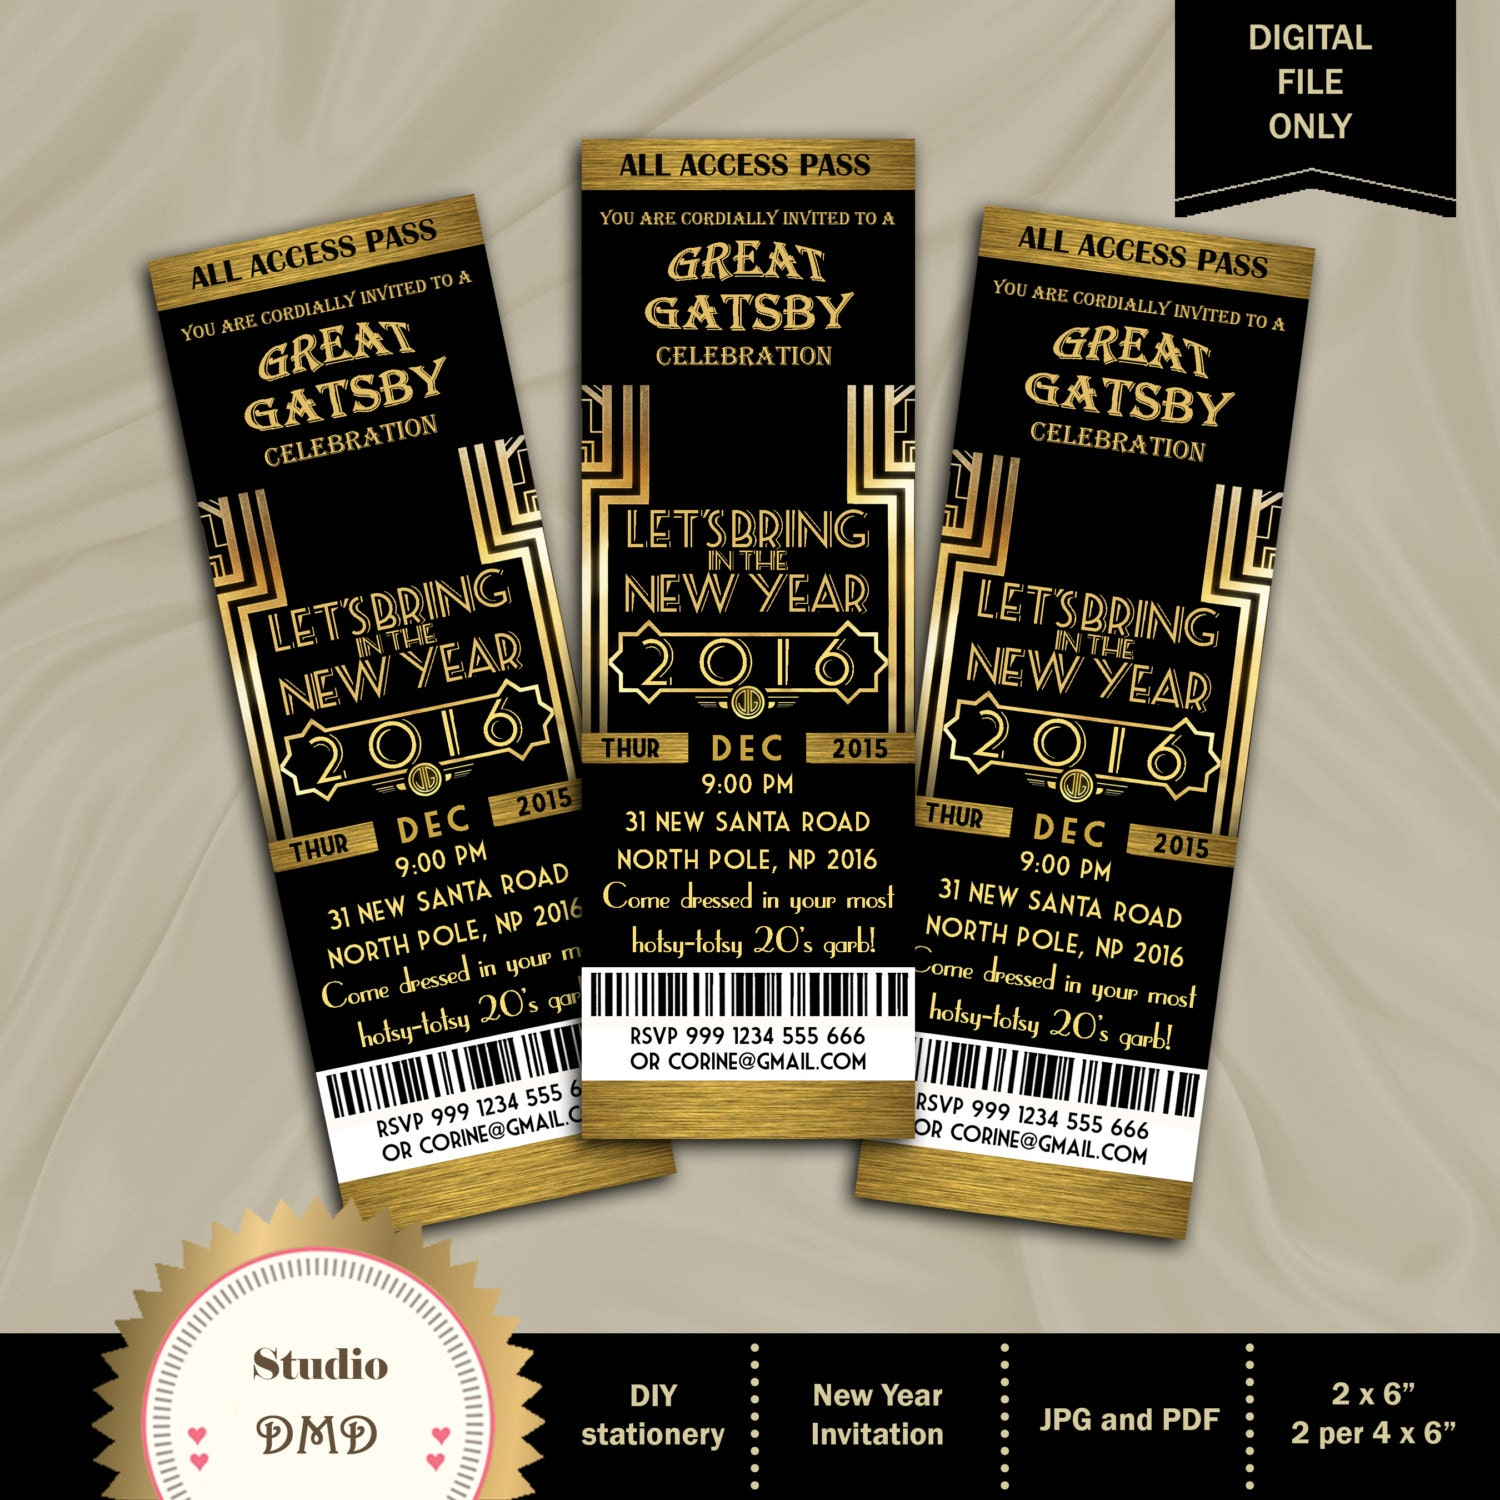 Great Gatsby Invitation New Year invitation New Year's